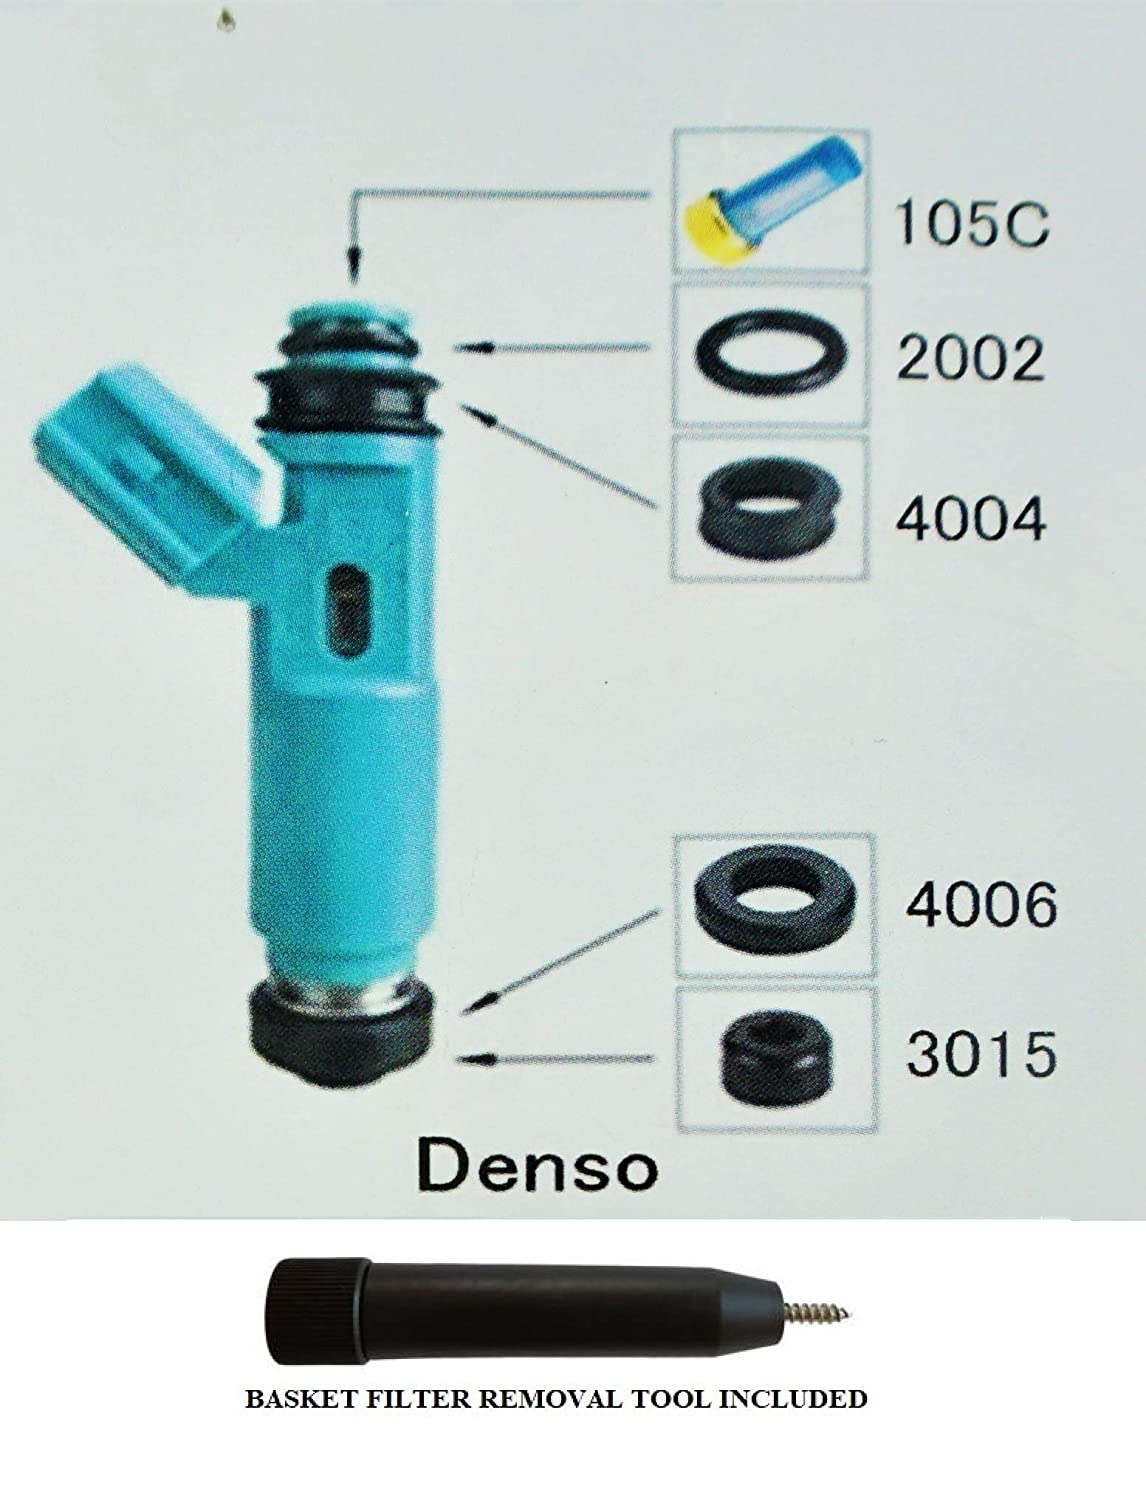 with Optional Filter Removal Tool Complete Fuel Injector Rebuild Kit for DENSO Blue